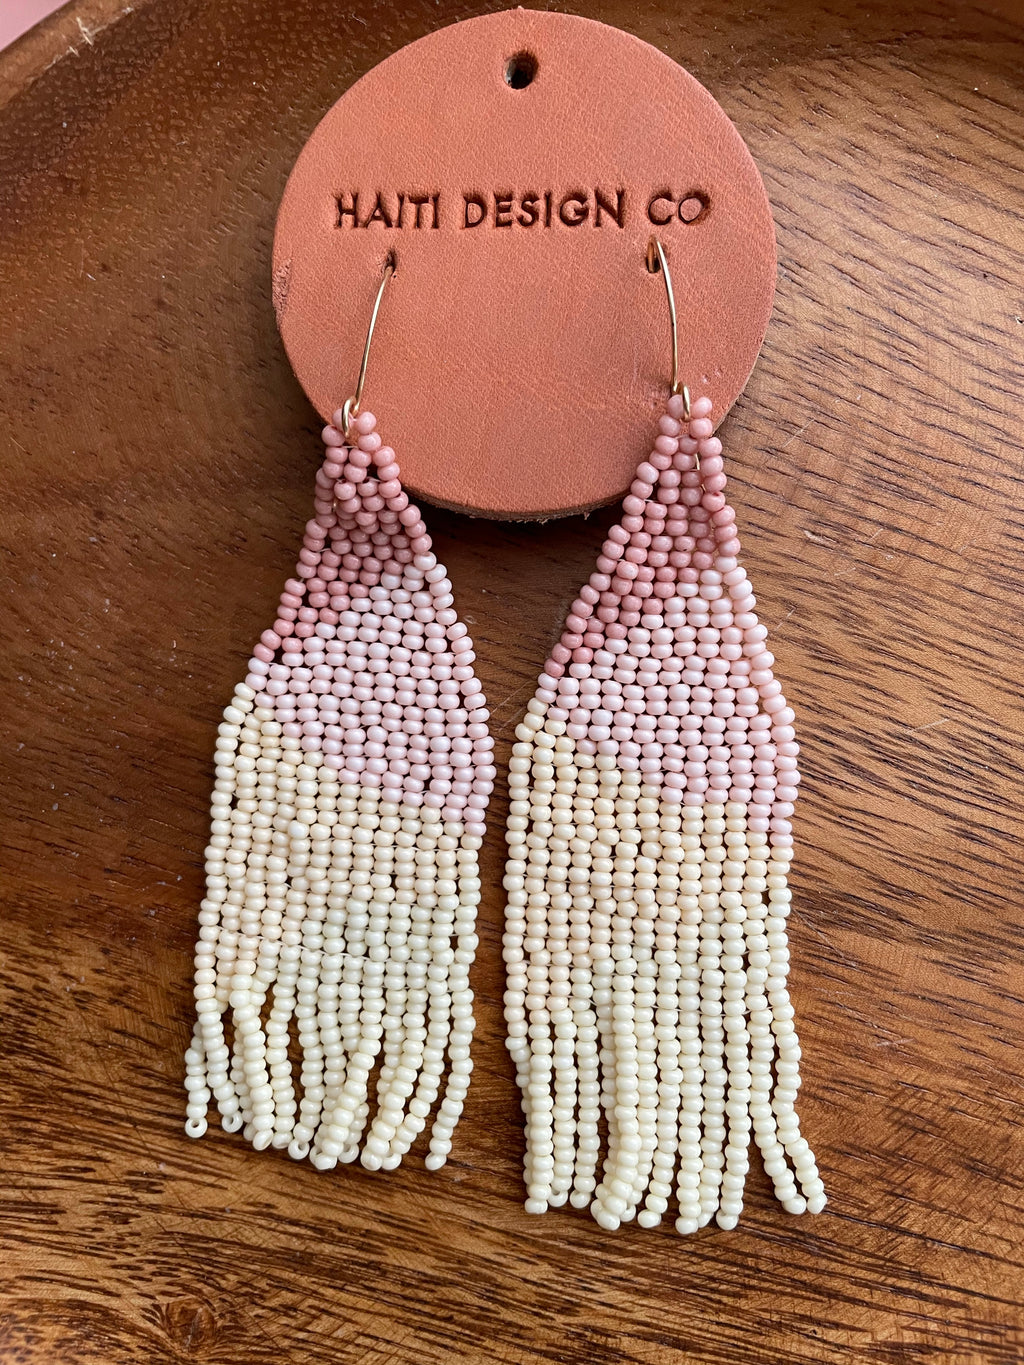 HDC Gradient Earrings